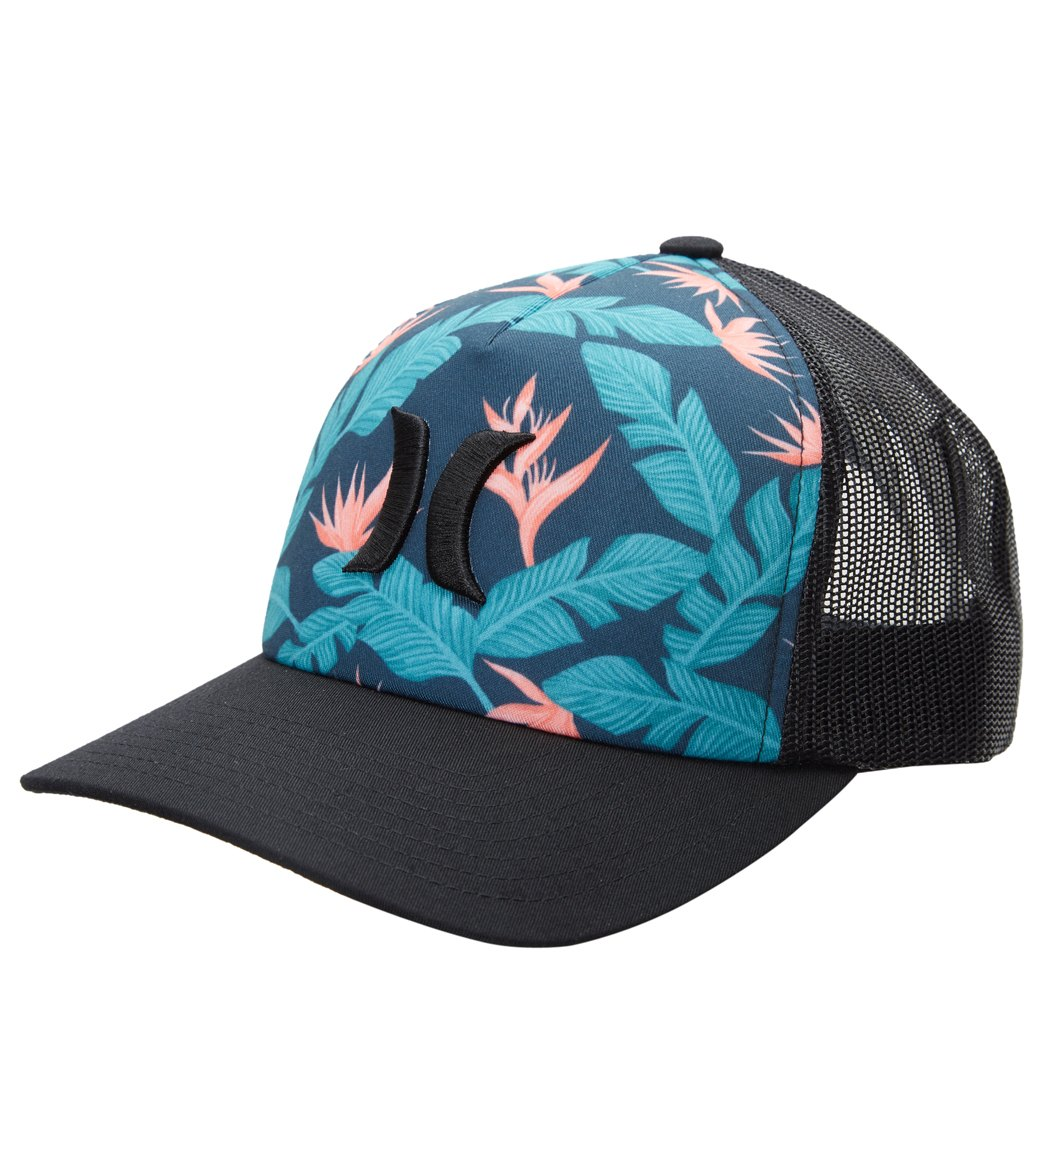 2a330da0ae303 Hurley Women s Hanoi Icon Trucker Hat at SwimOutlet.com